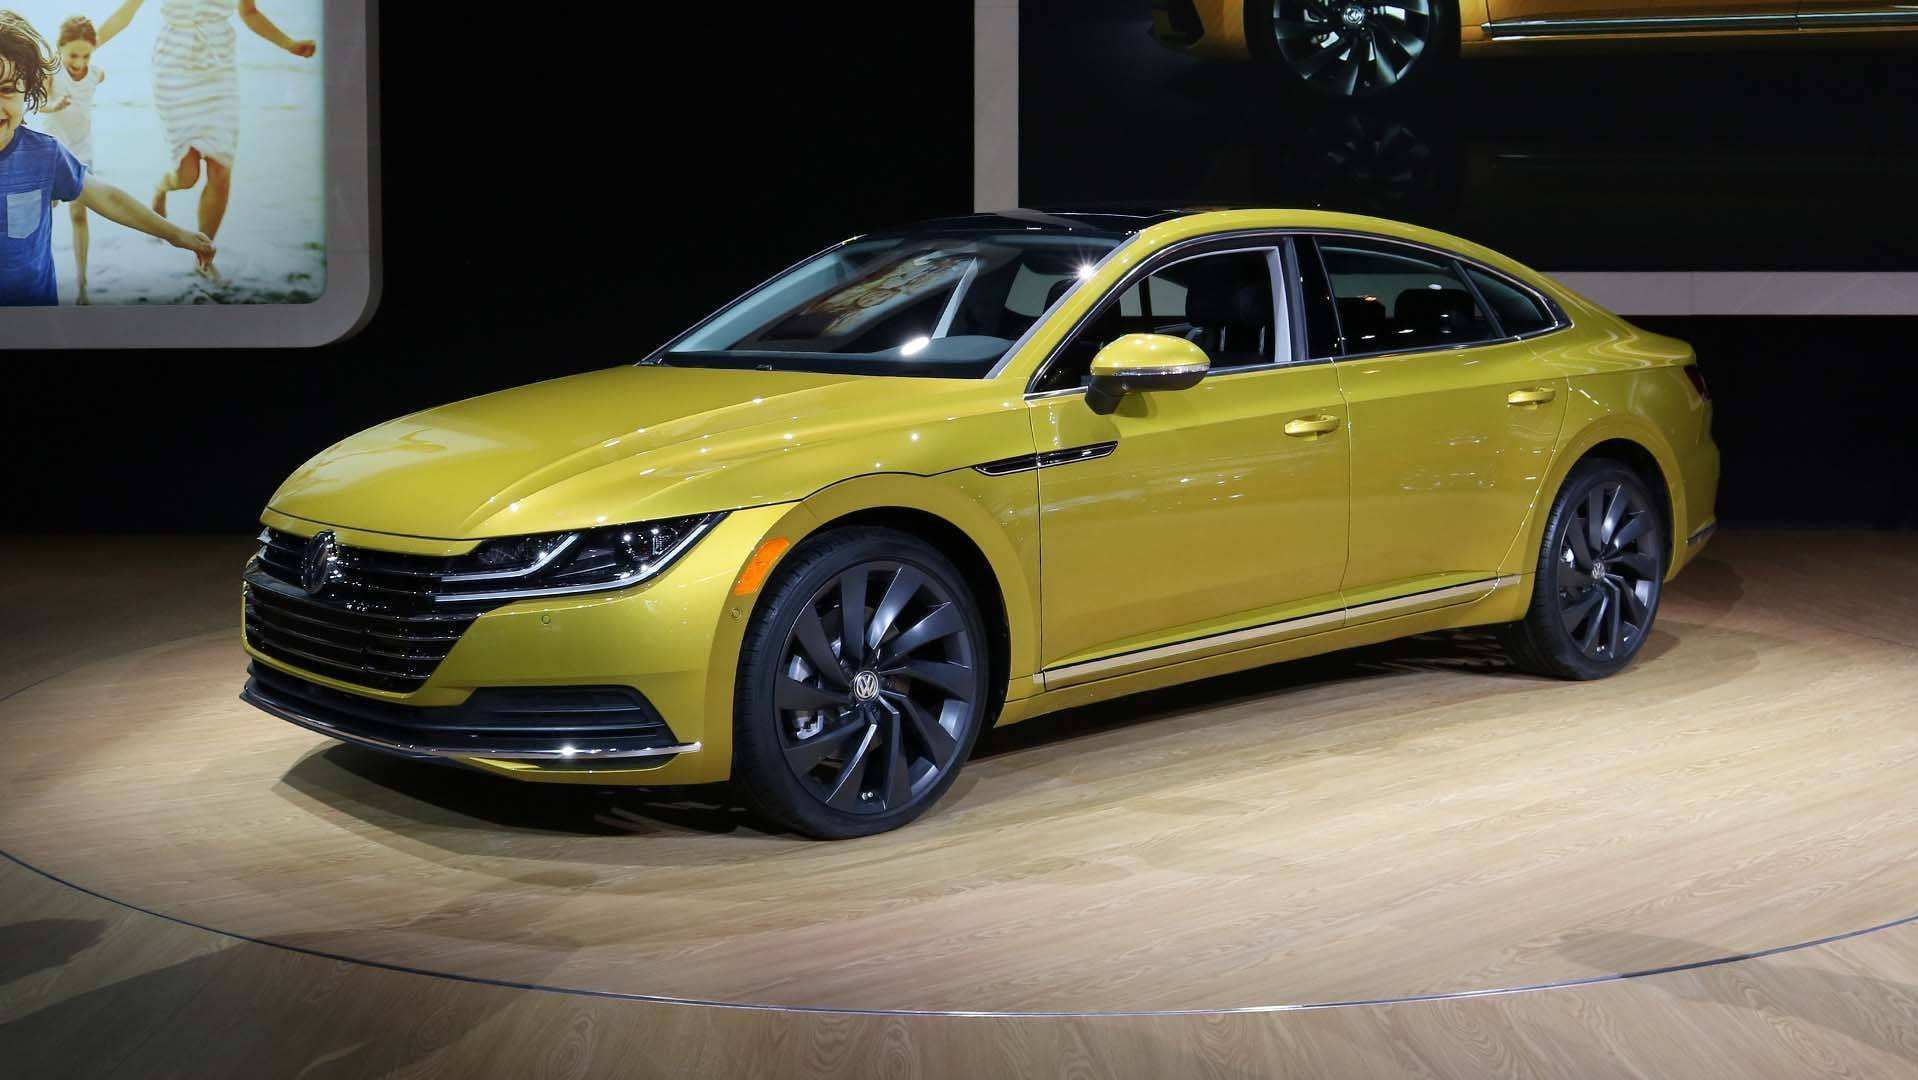 29 Best Review Vw 2019 Arteon Ratings by Vw 2019 Arteon